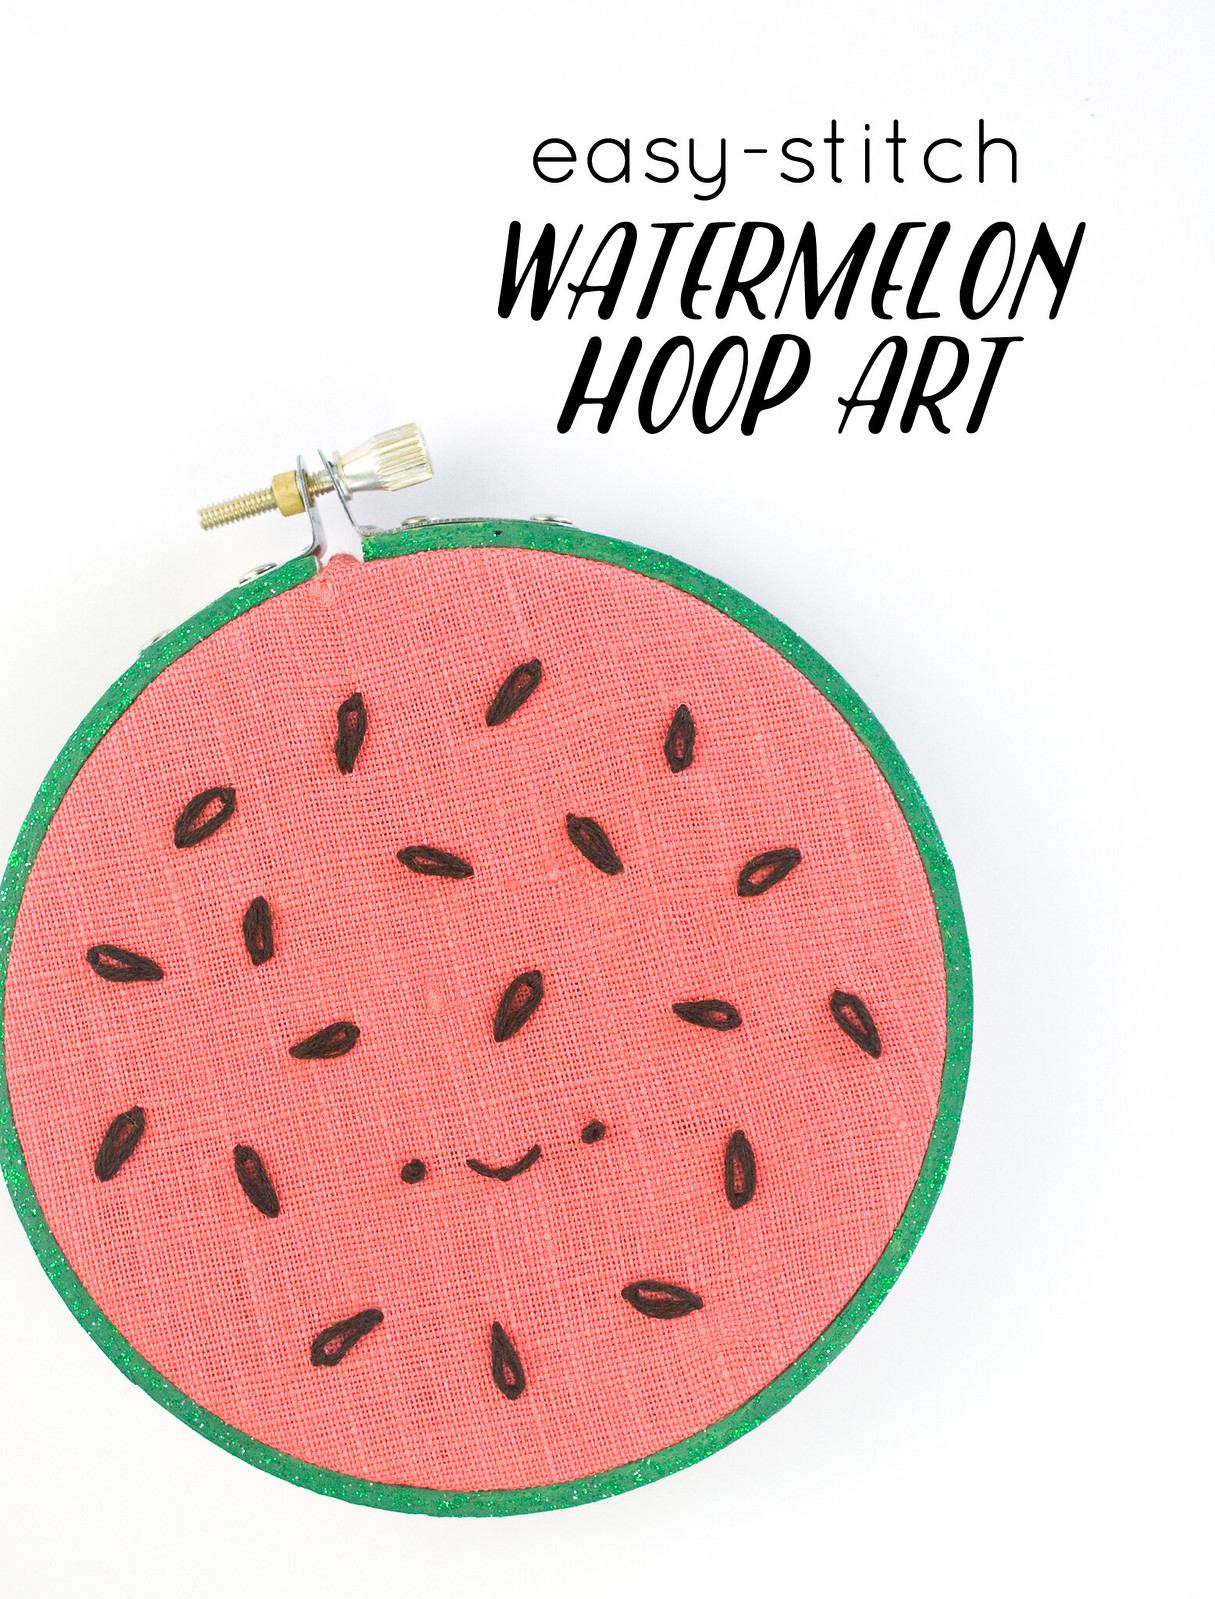 WatermelonHoop8